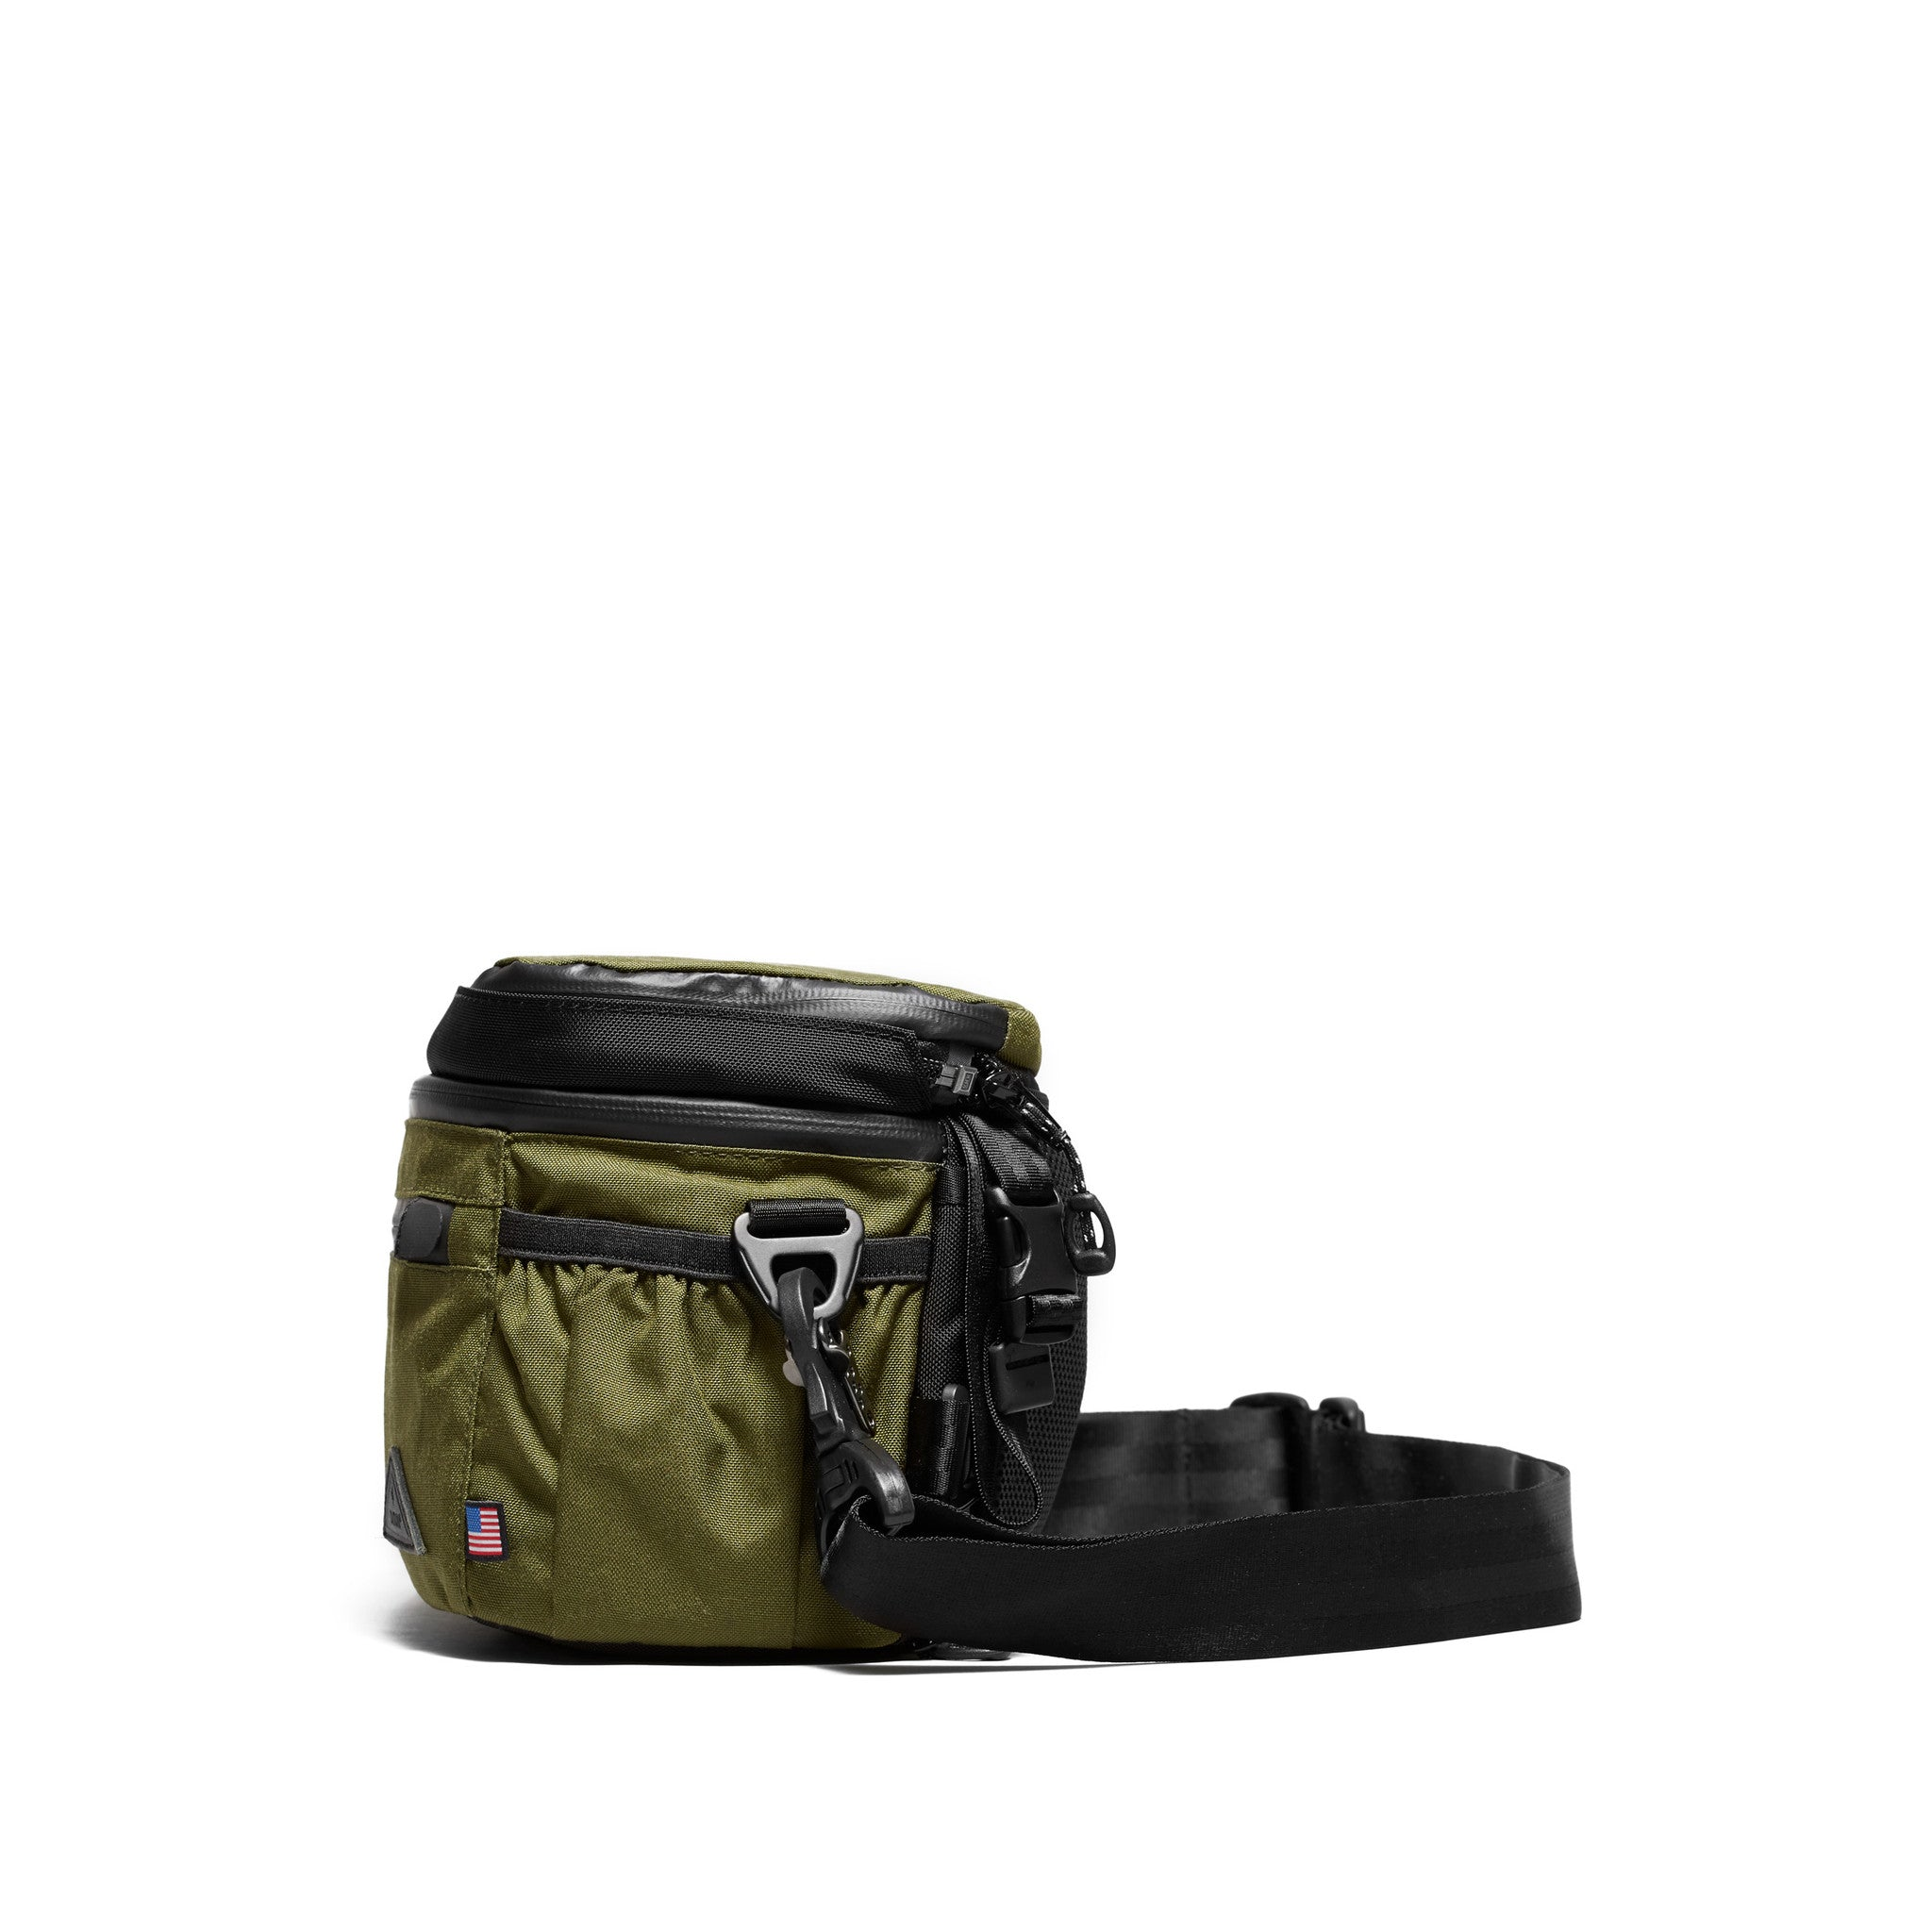 Trecknos Deuce Pack - Forest Green